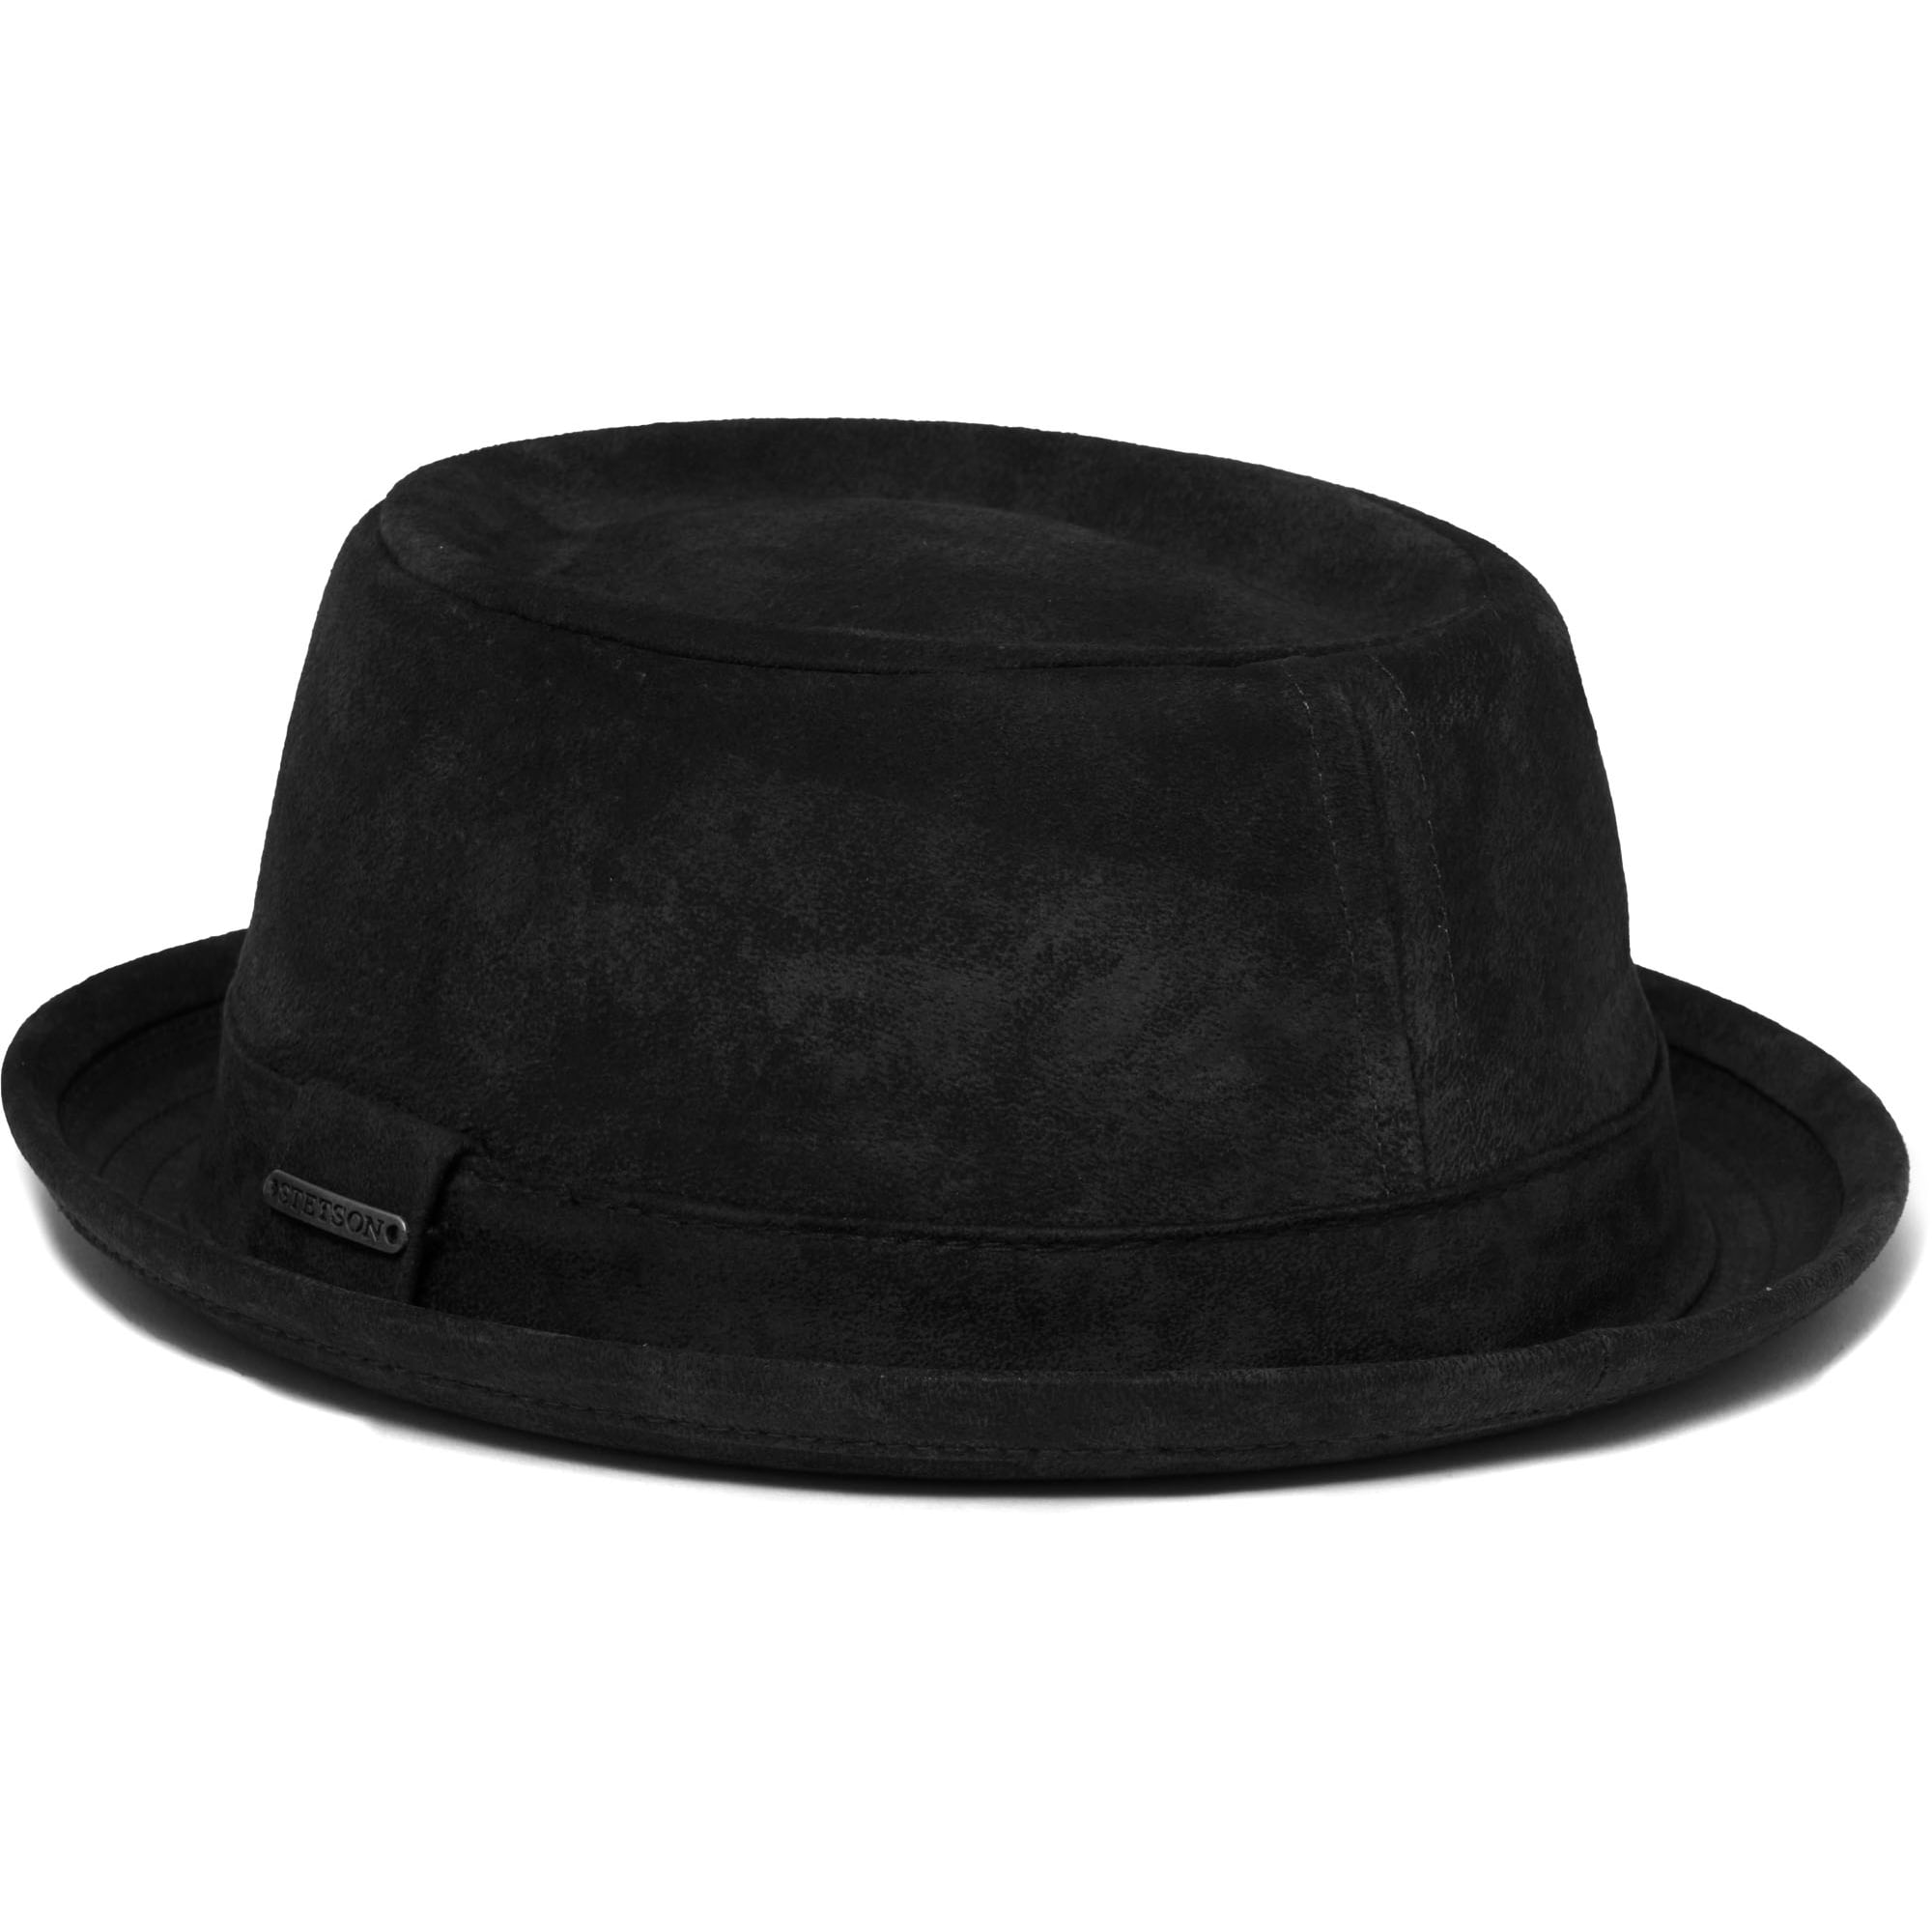 Stetson Black Odenton Pork Pie Cloth Hat 35278  24e94596203